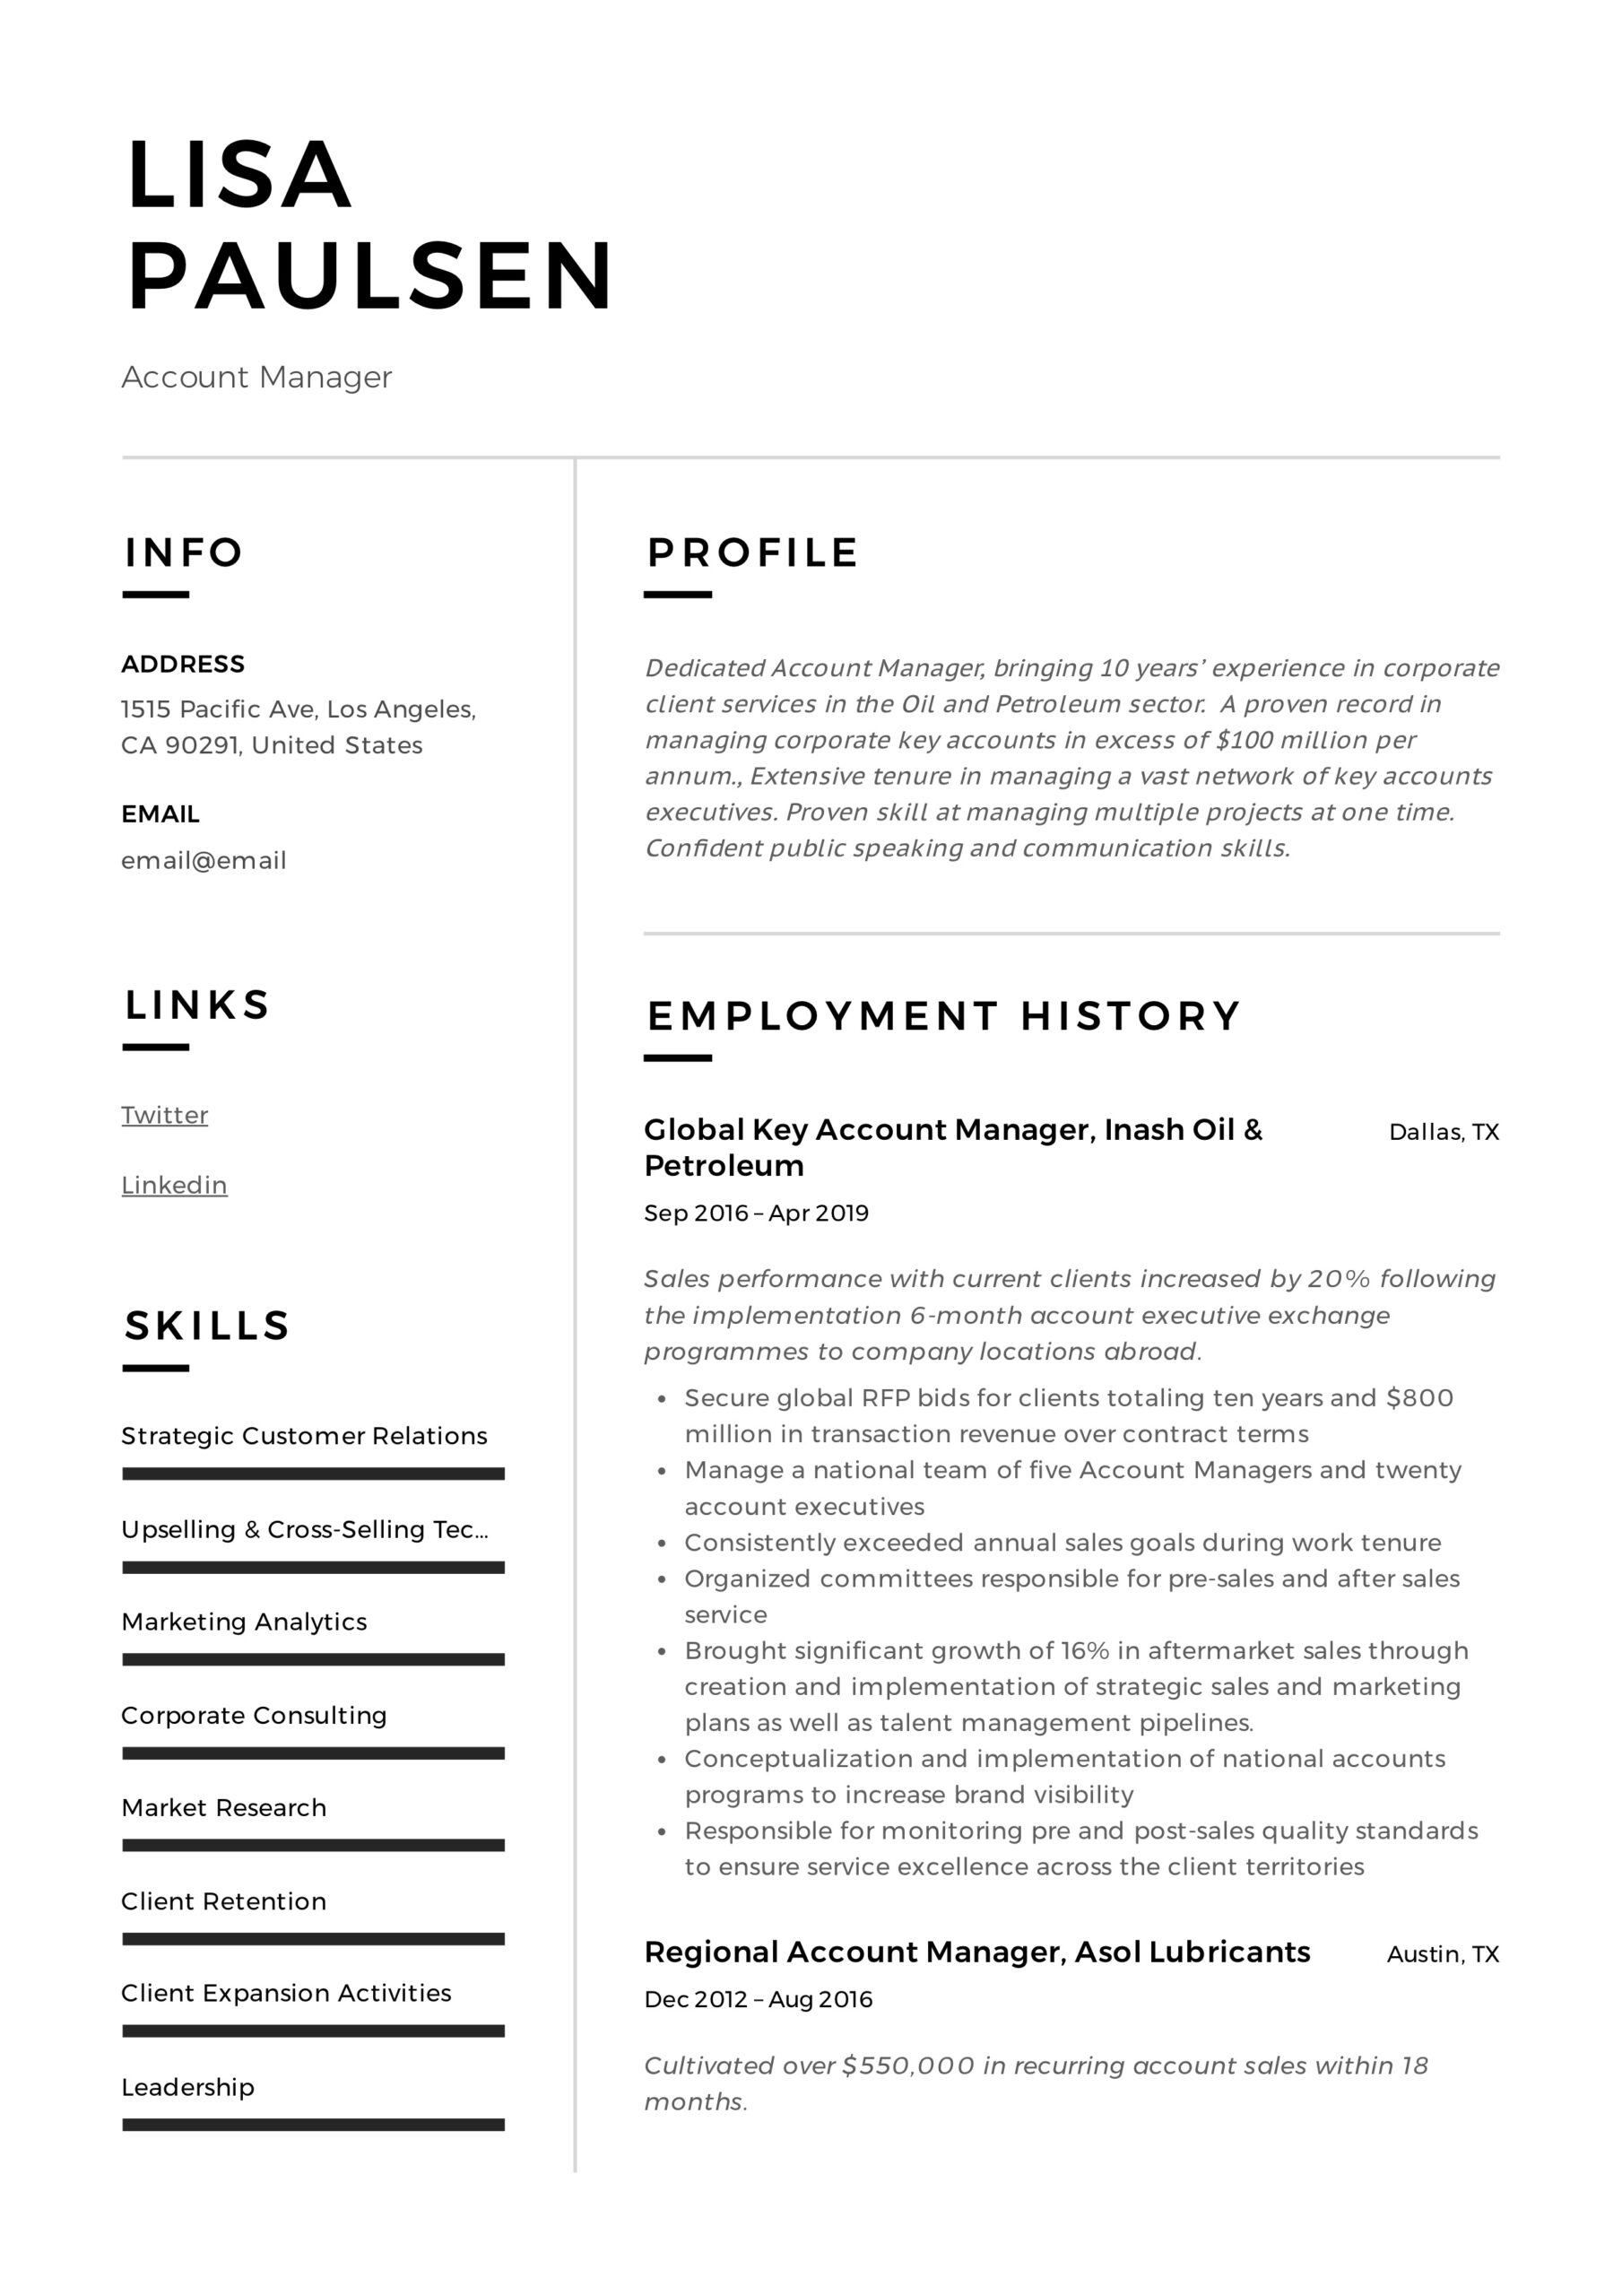 account manager resume writing guide examples best for lisa paulsen jobfox service short Resume Best Resume For Account Manager